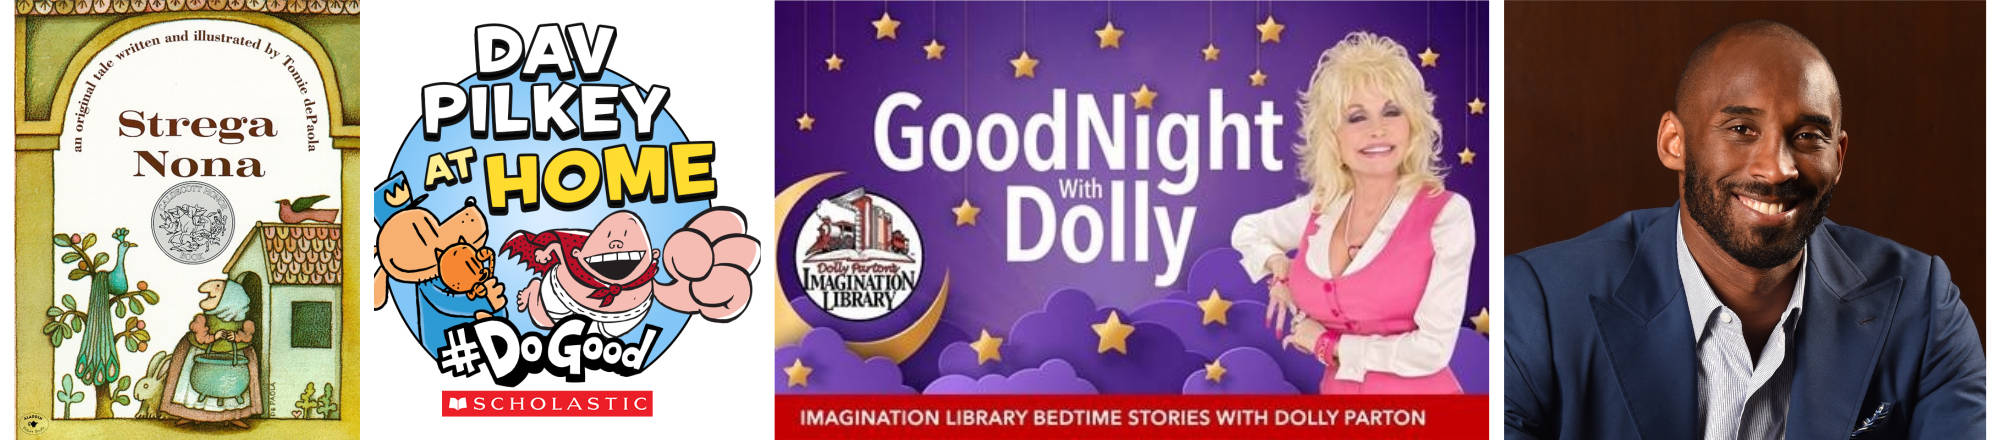 (Simon & Schuster Books for Young Readers; Scholastic; Dolly Parton (Courtesy of Imagination Library); Kobe Bryant (File photo by Andrew D. Bernstein)